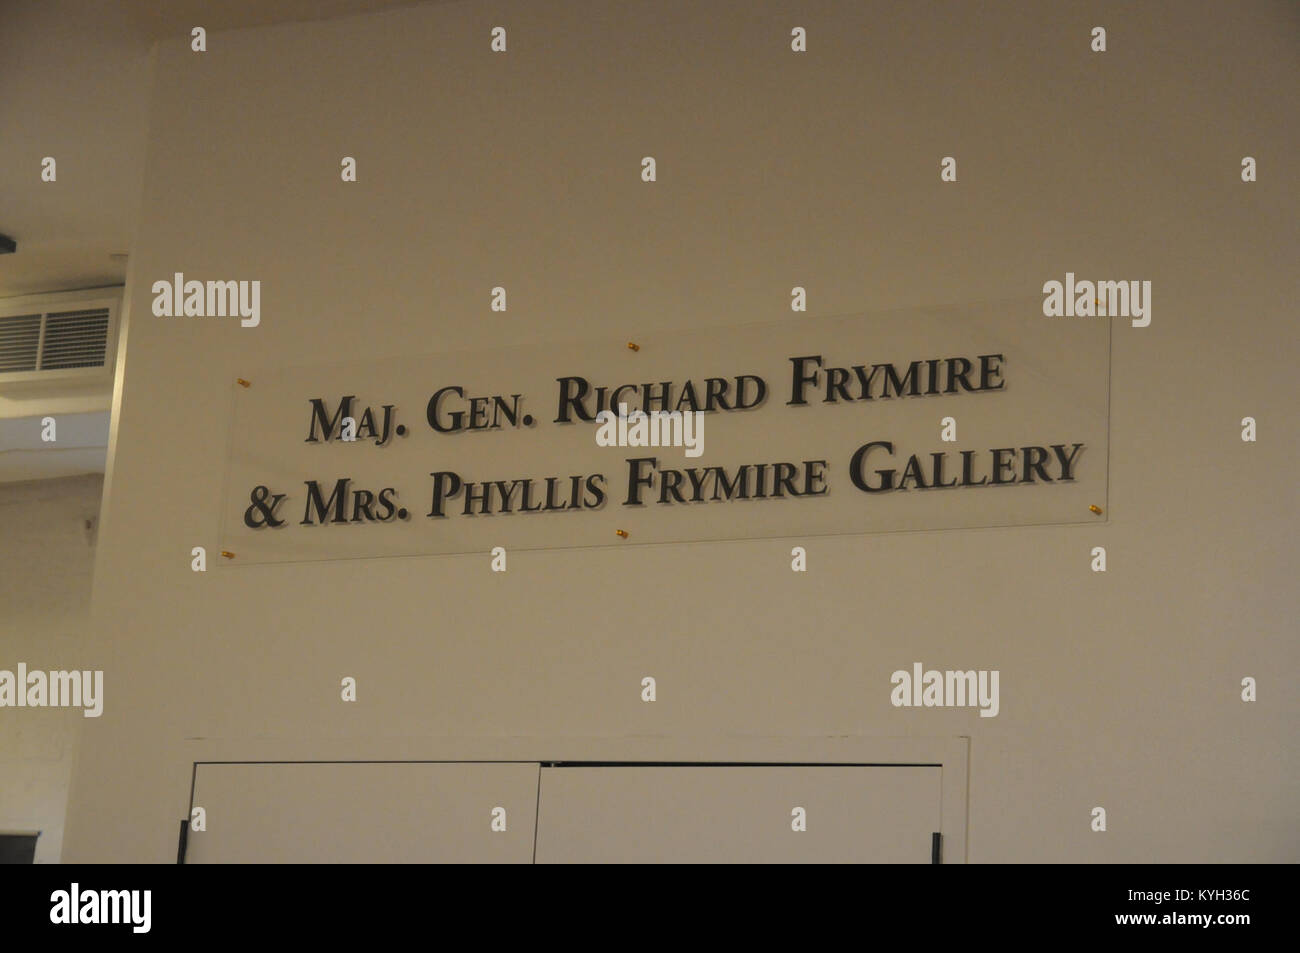 The new sign dedicating the gallery hall to Maj. Gen. Richard Frymire and Mrs. Phyllis Frymire for their contribution - Stock Image